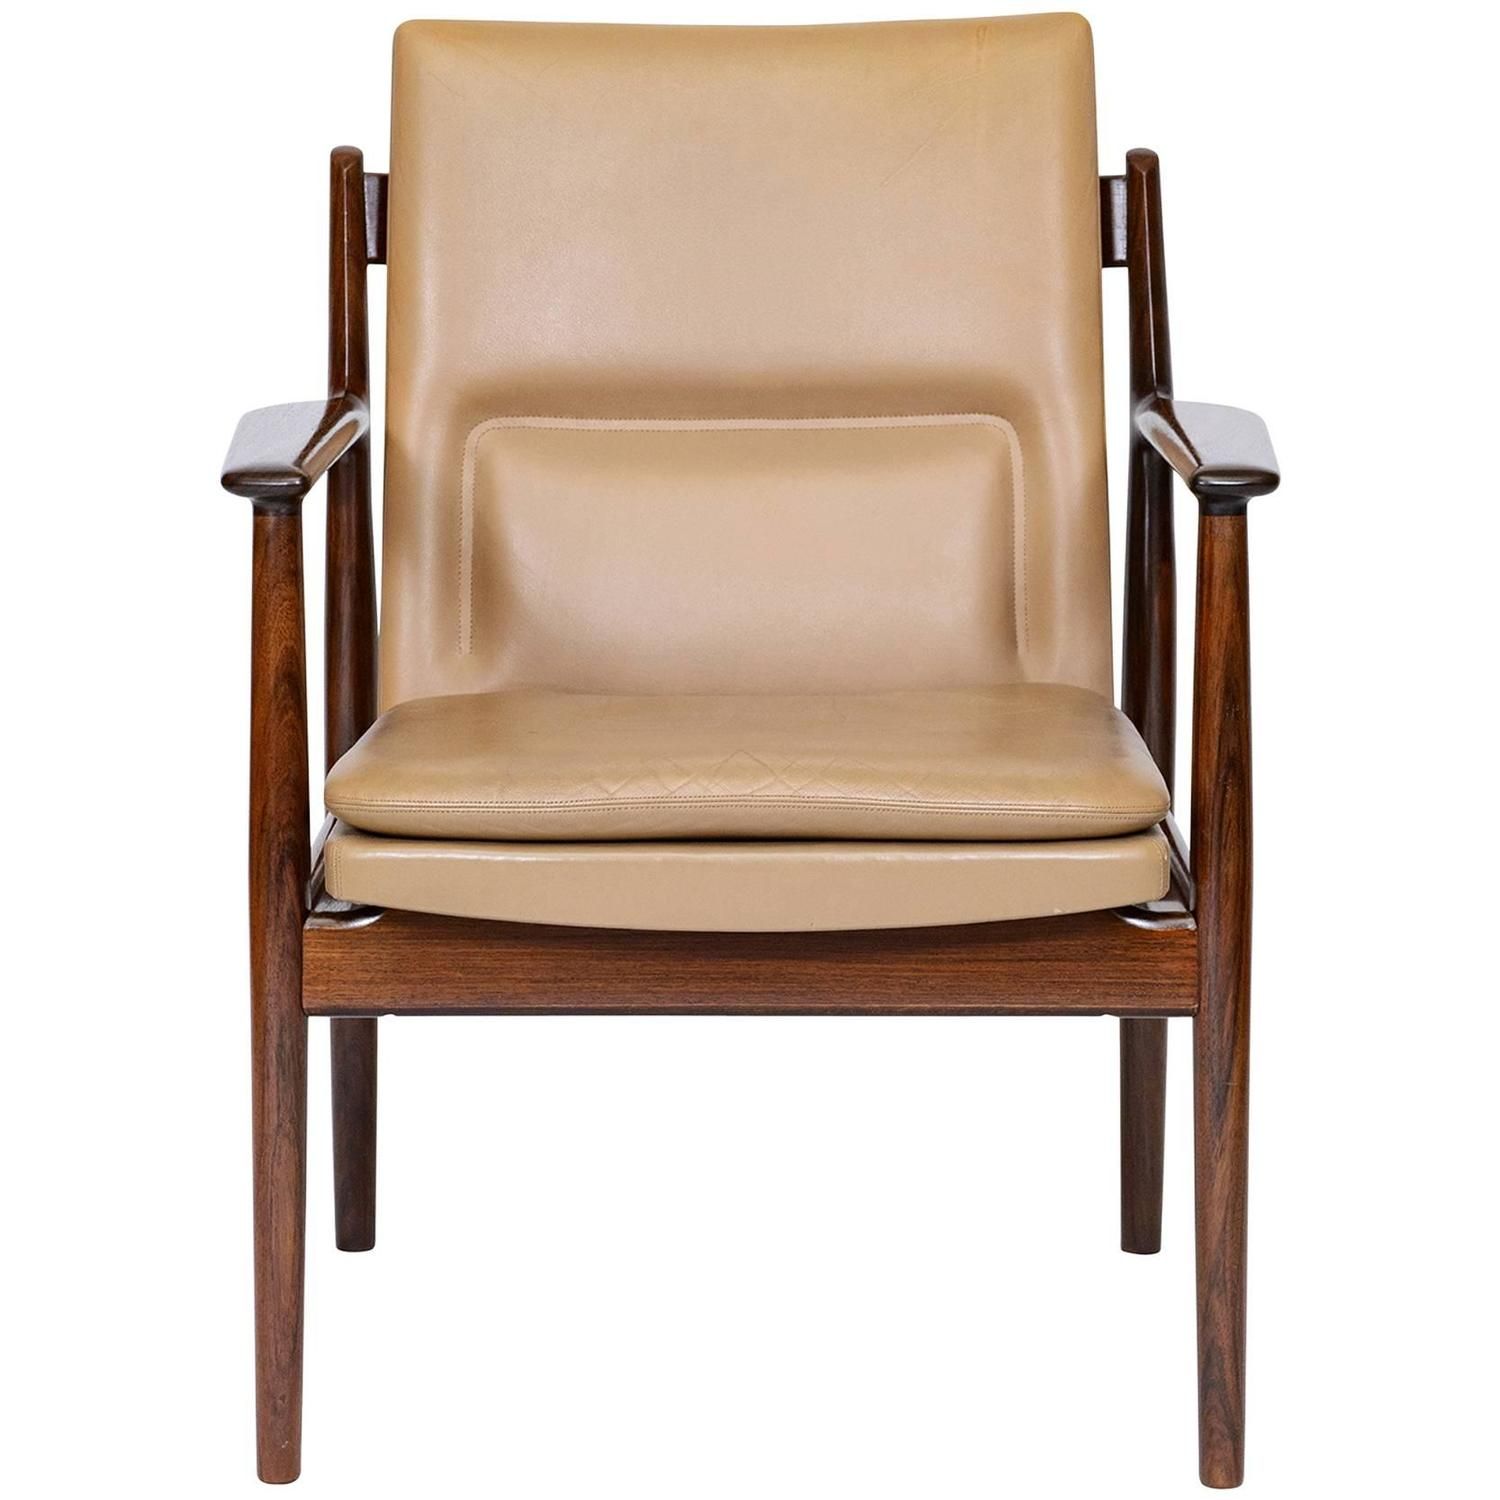 arne vodder rosewood armchair at 1stdibs. Black Bedroom Furniture Sets. Home Design Ideas